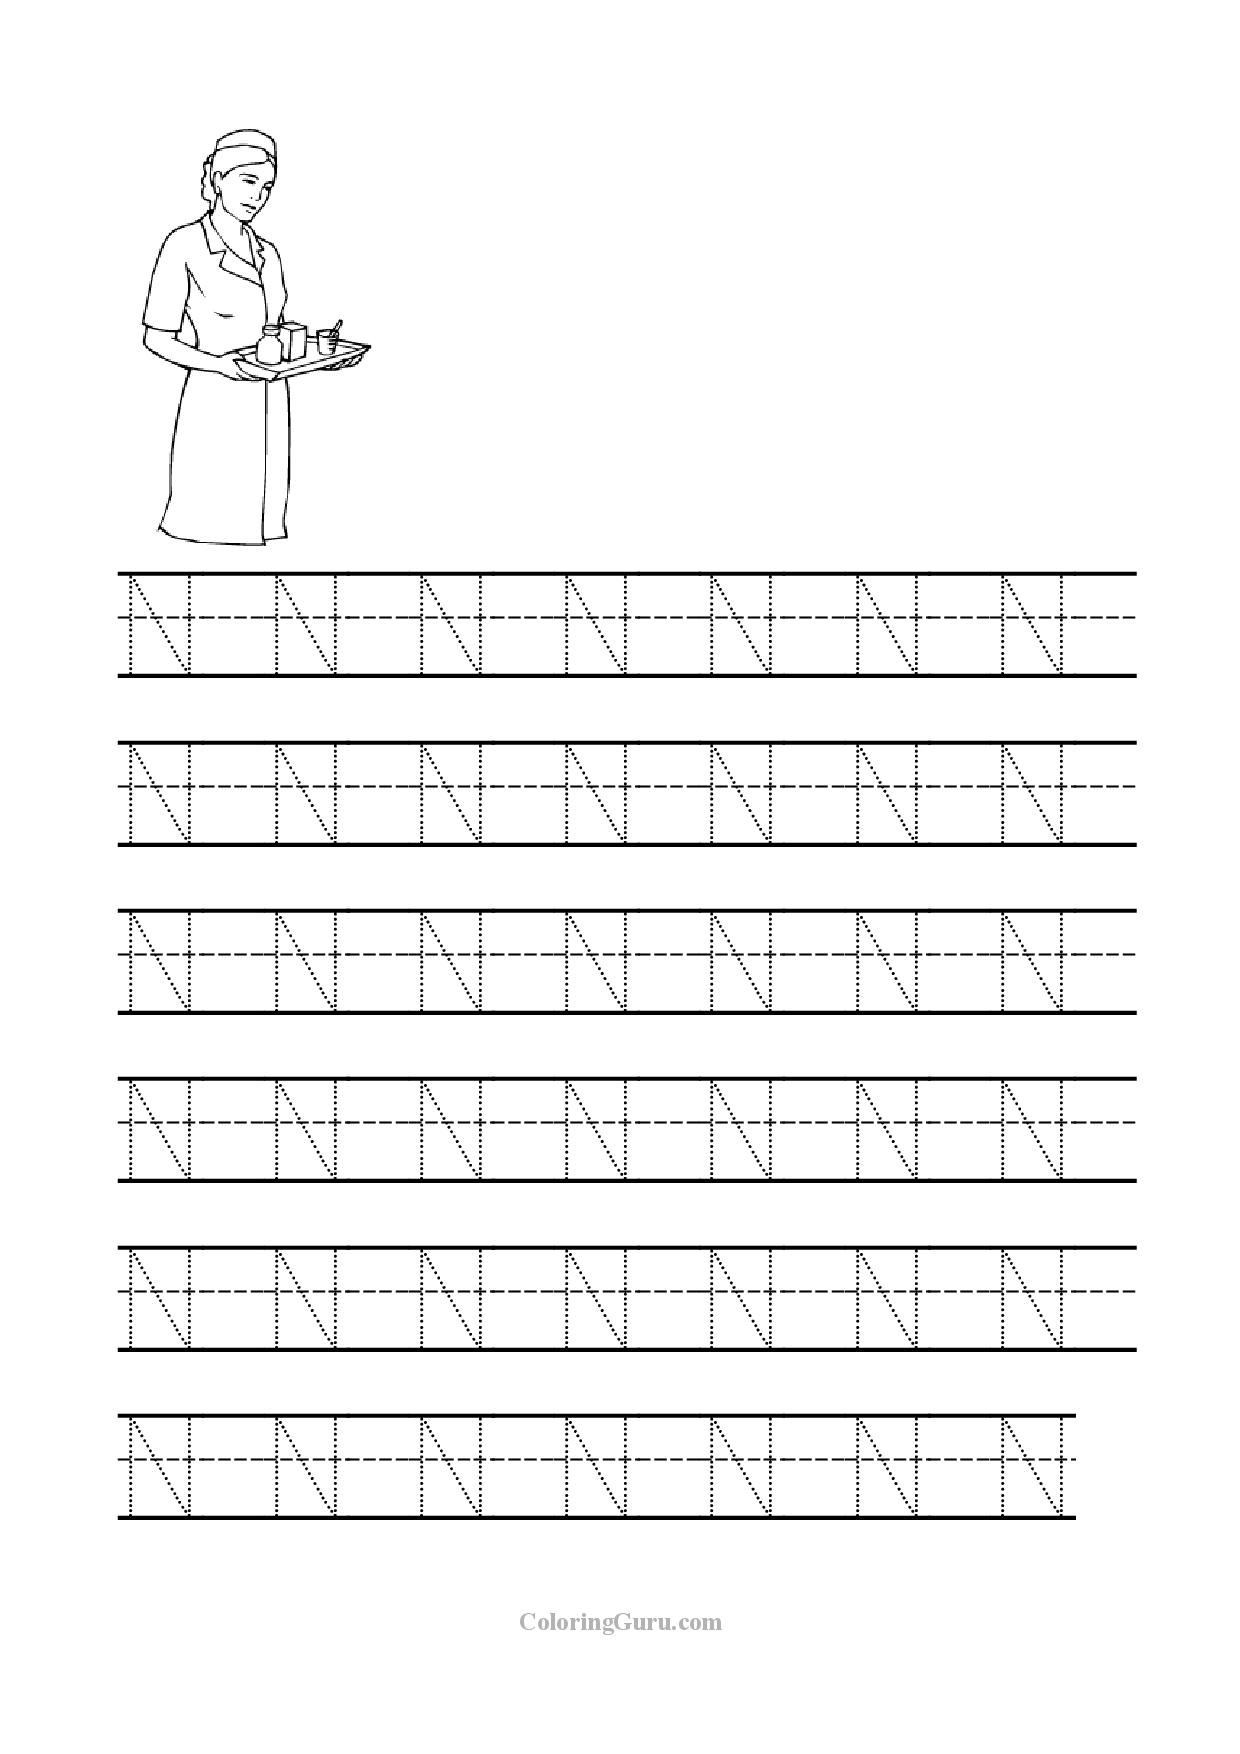 Preschool Letter N Worksheets Free Printable Tracing Letter N Worksheets for Preschool